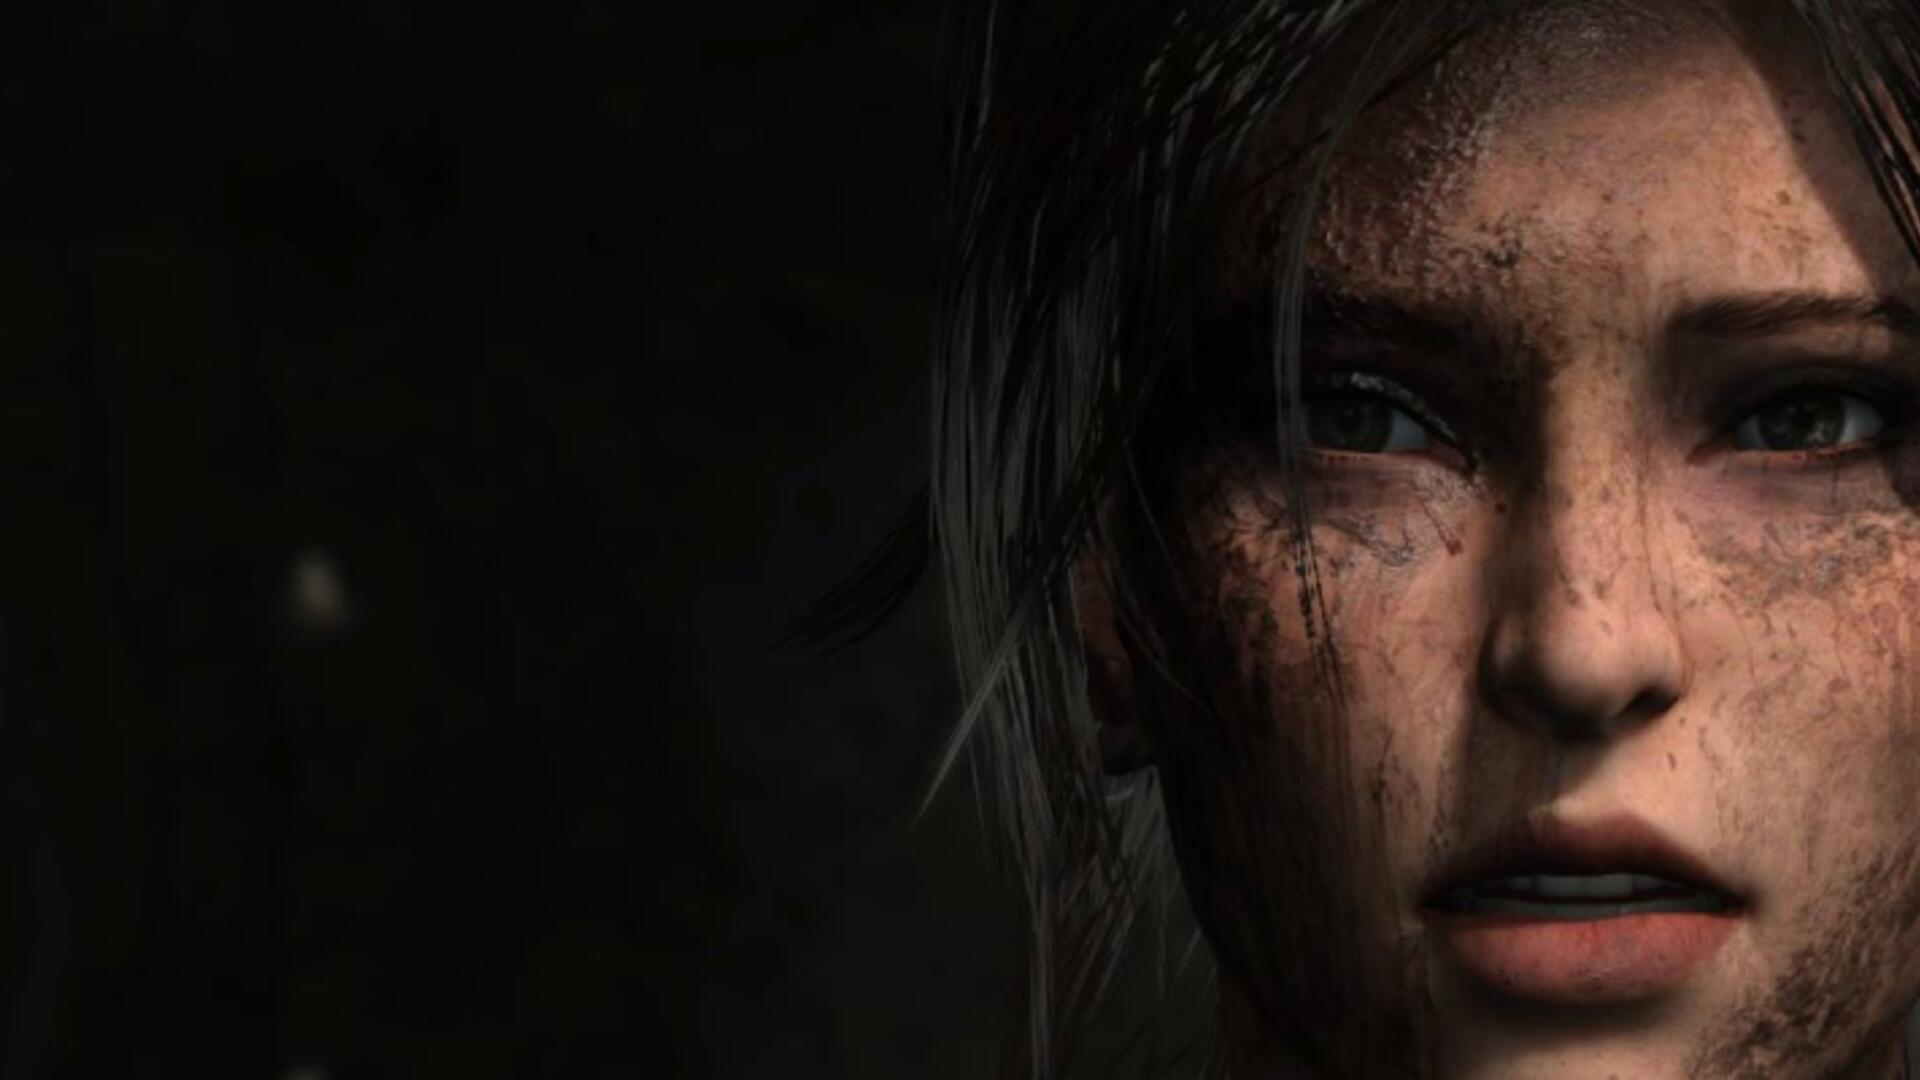 """E3 2014: When Did """"Female Protagonist"""" Become Code for """"Creative Ambition""""?"""